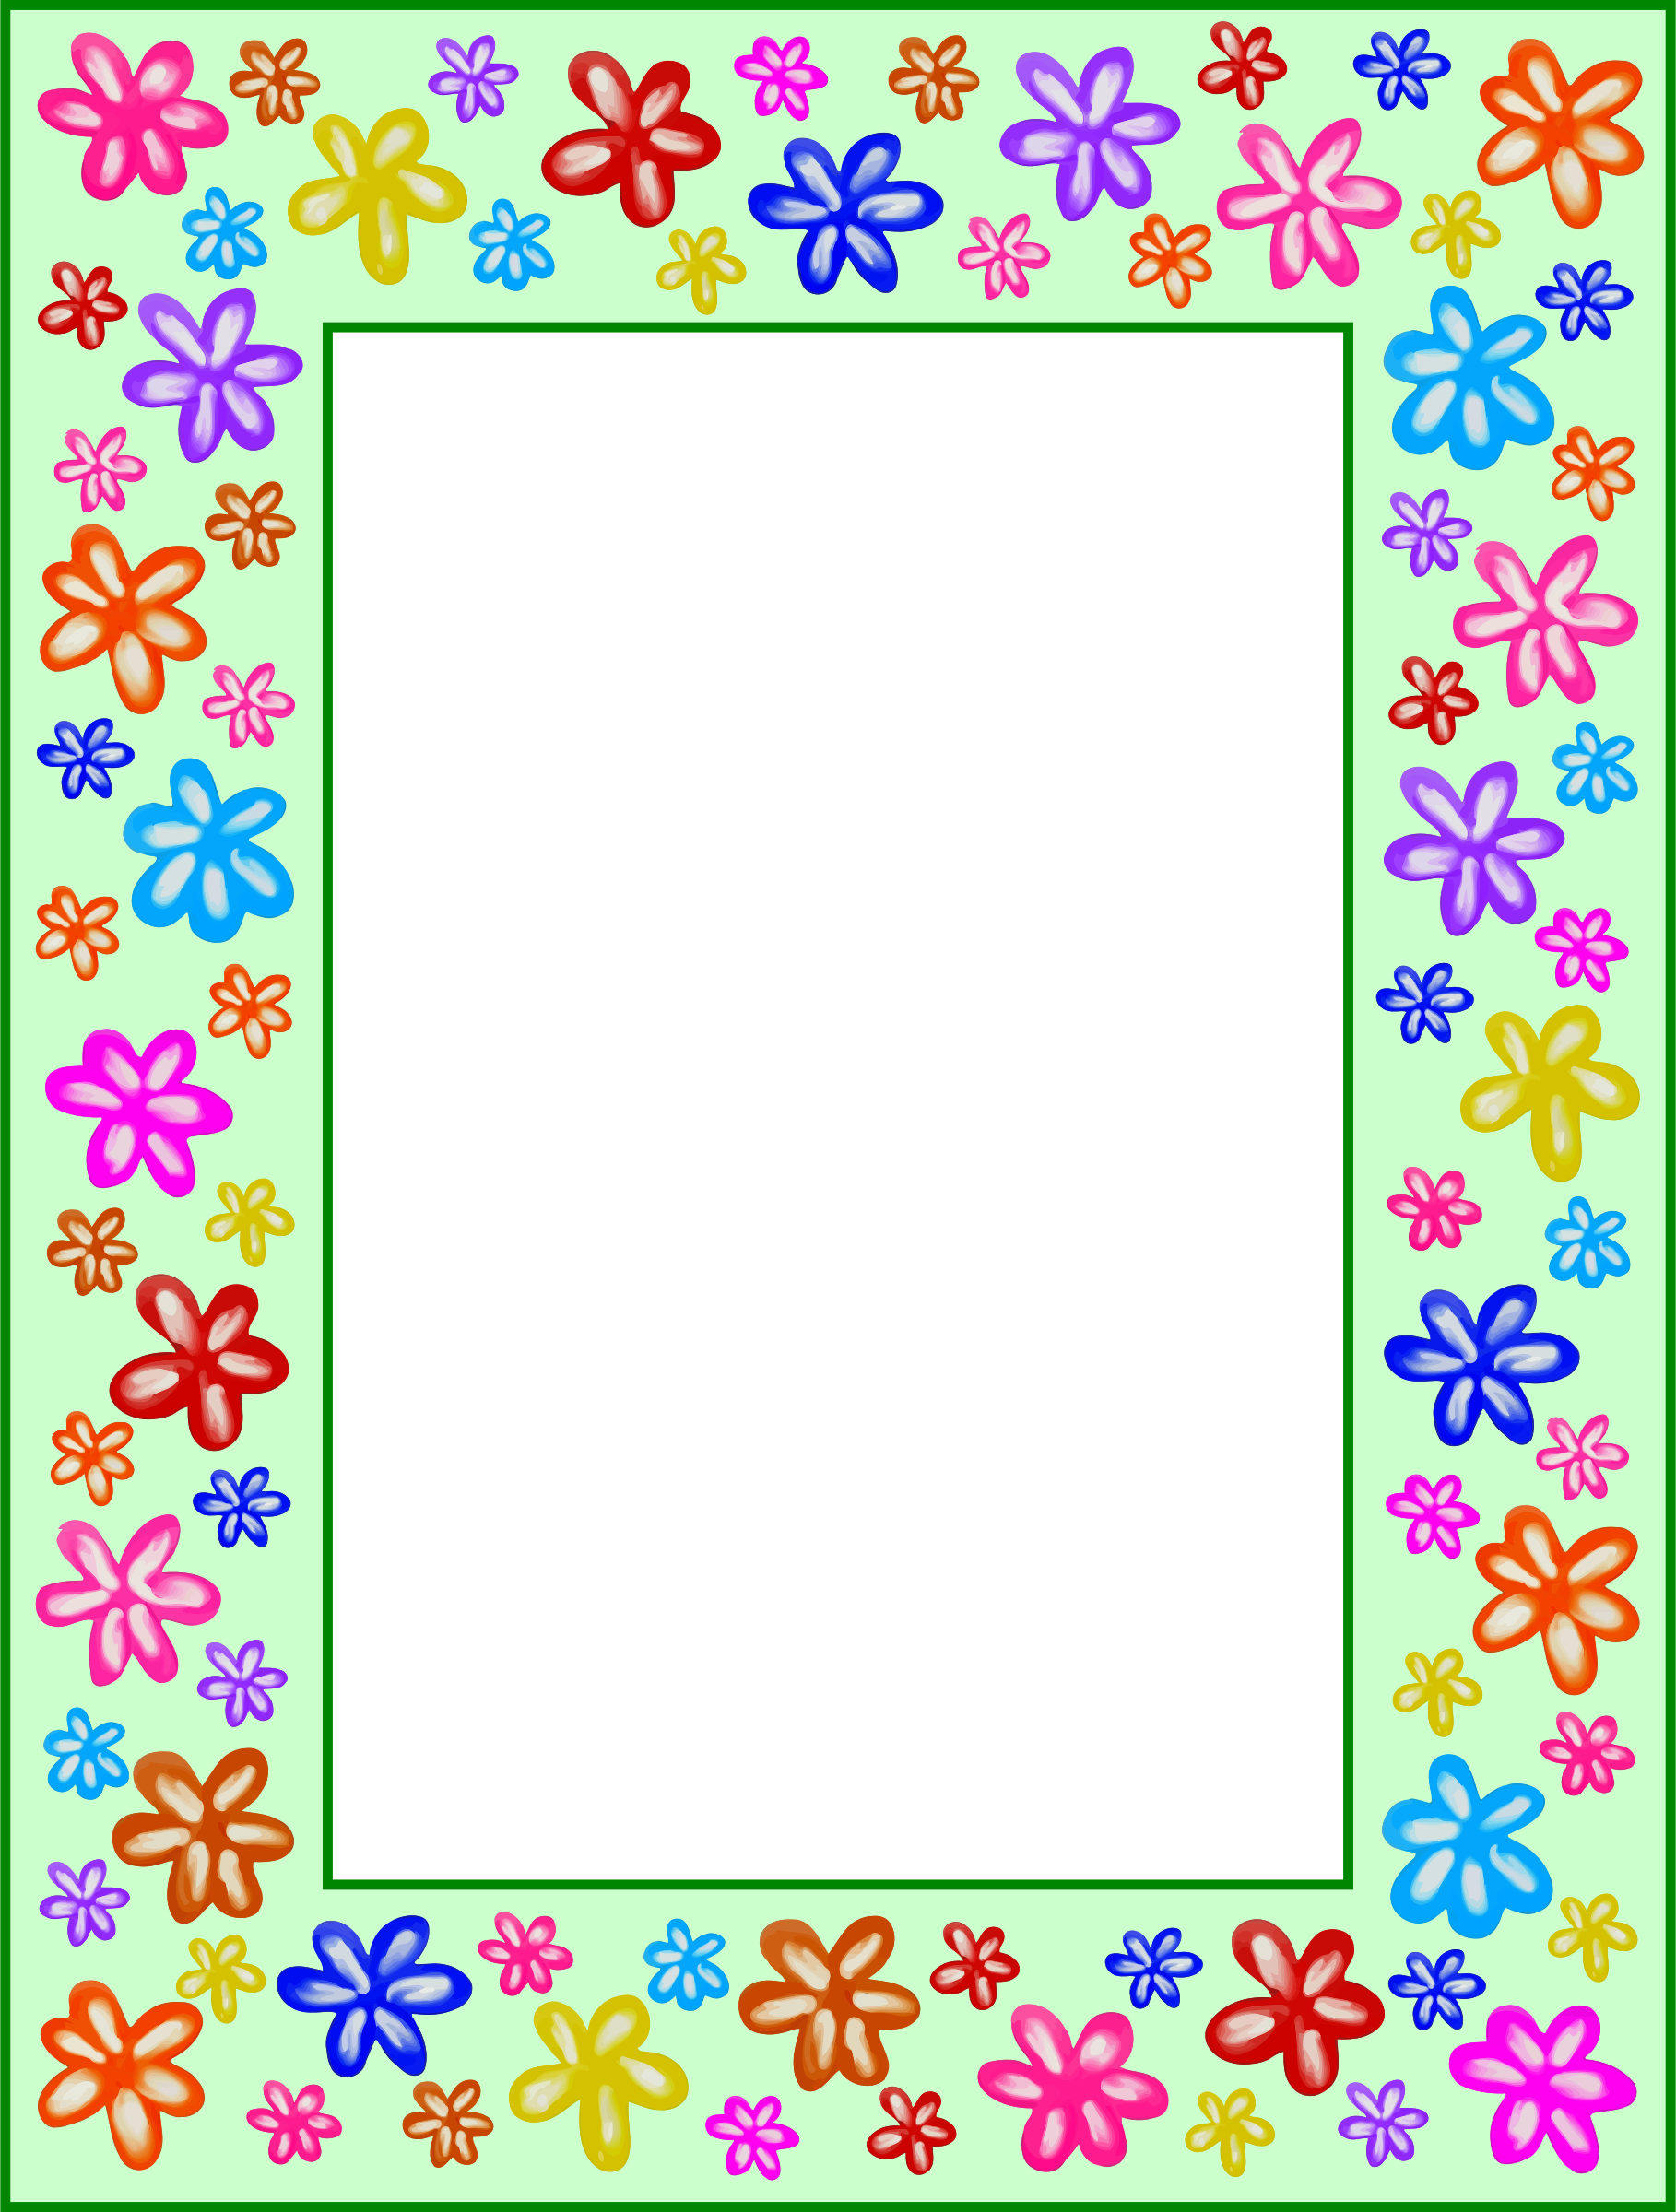 Floral frame 20 by Firkin